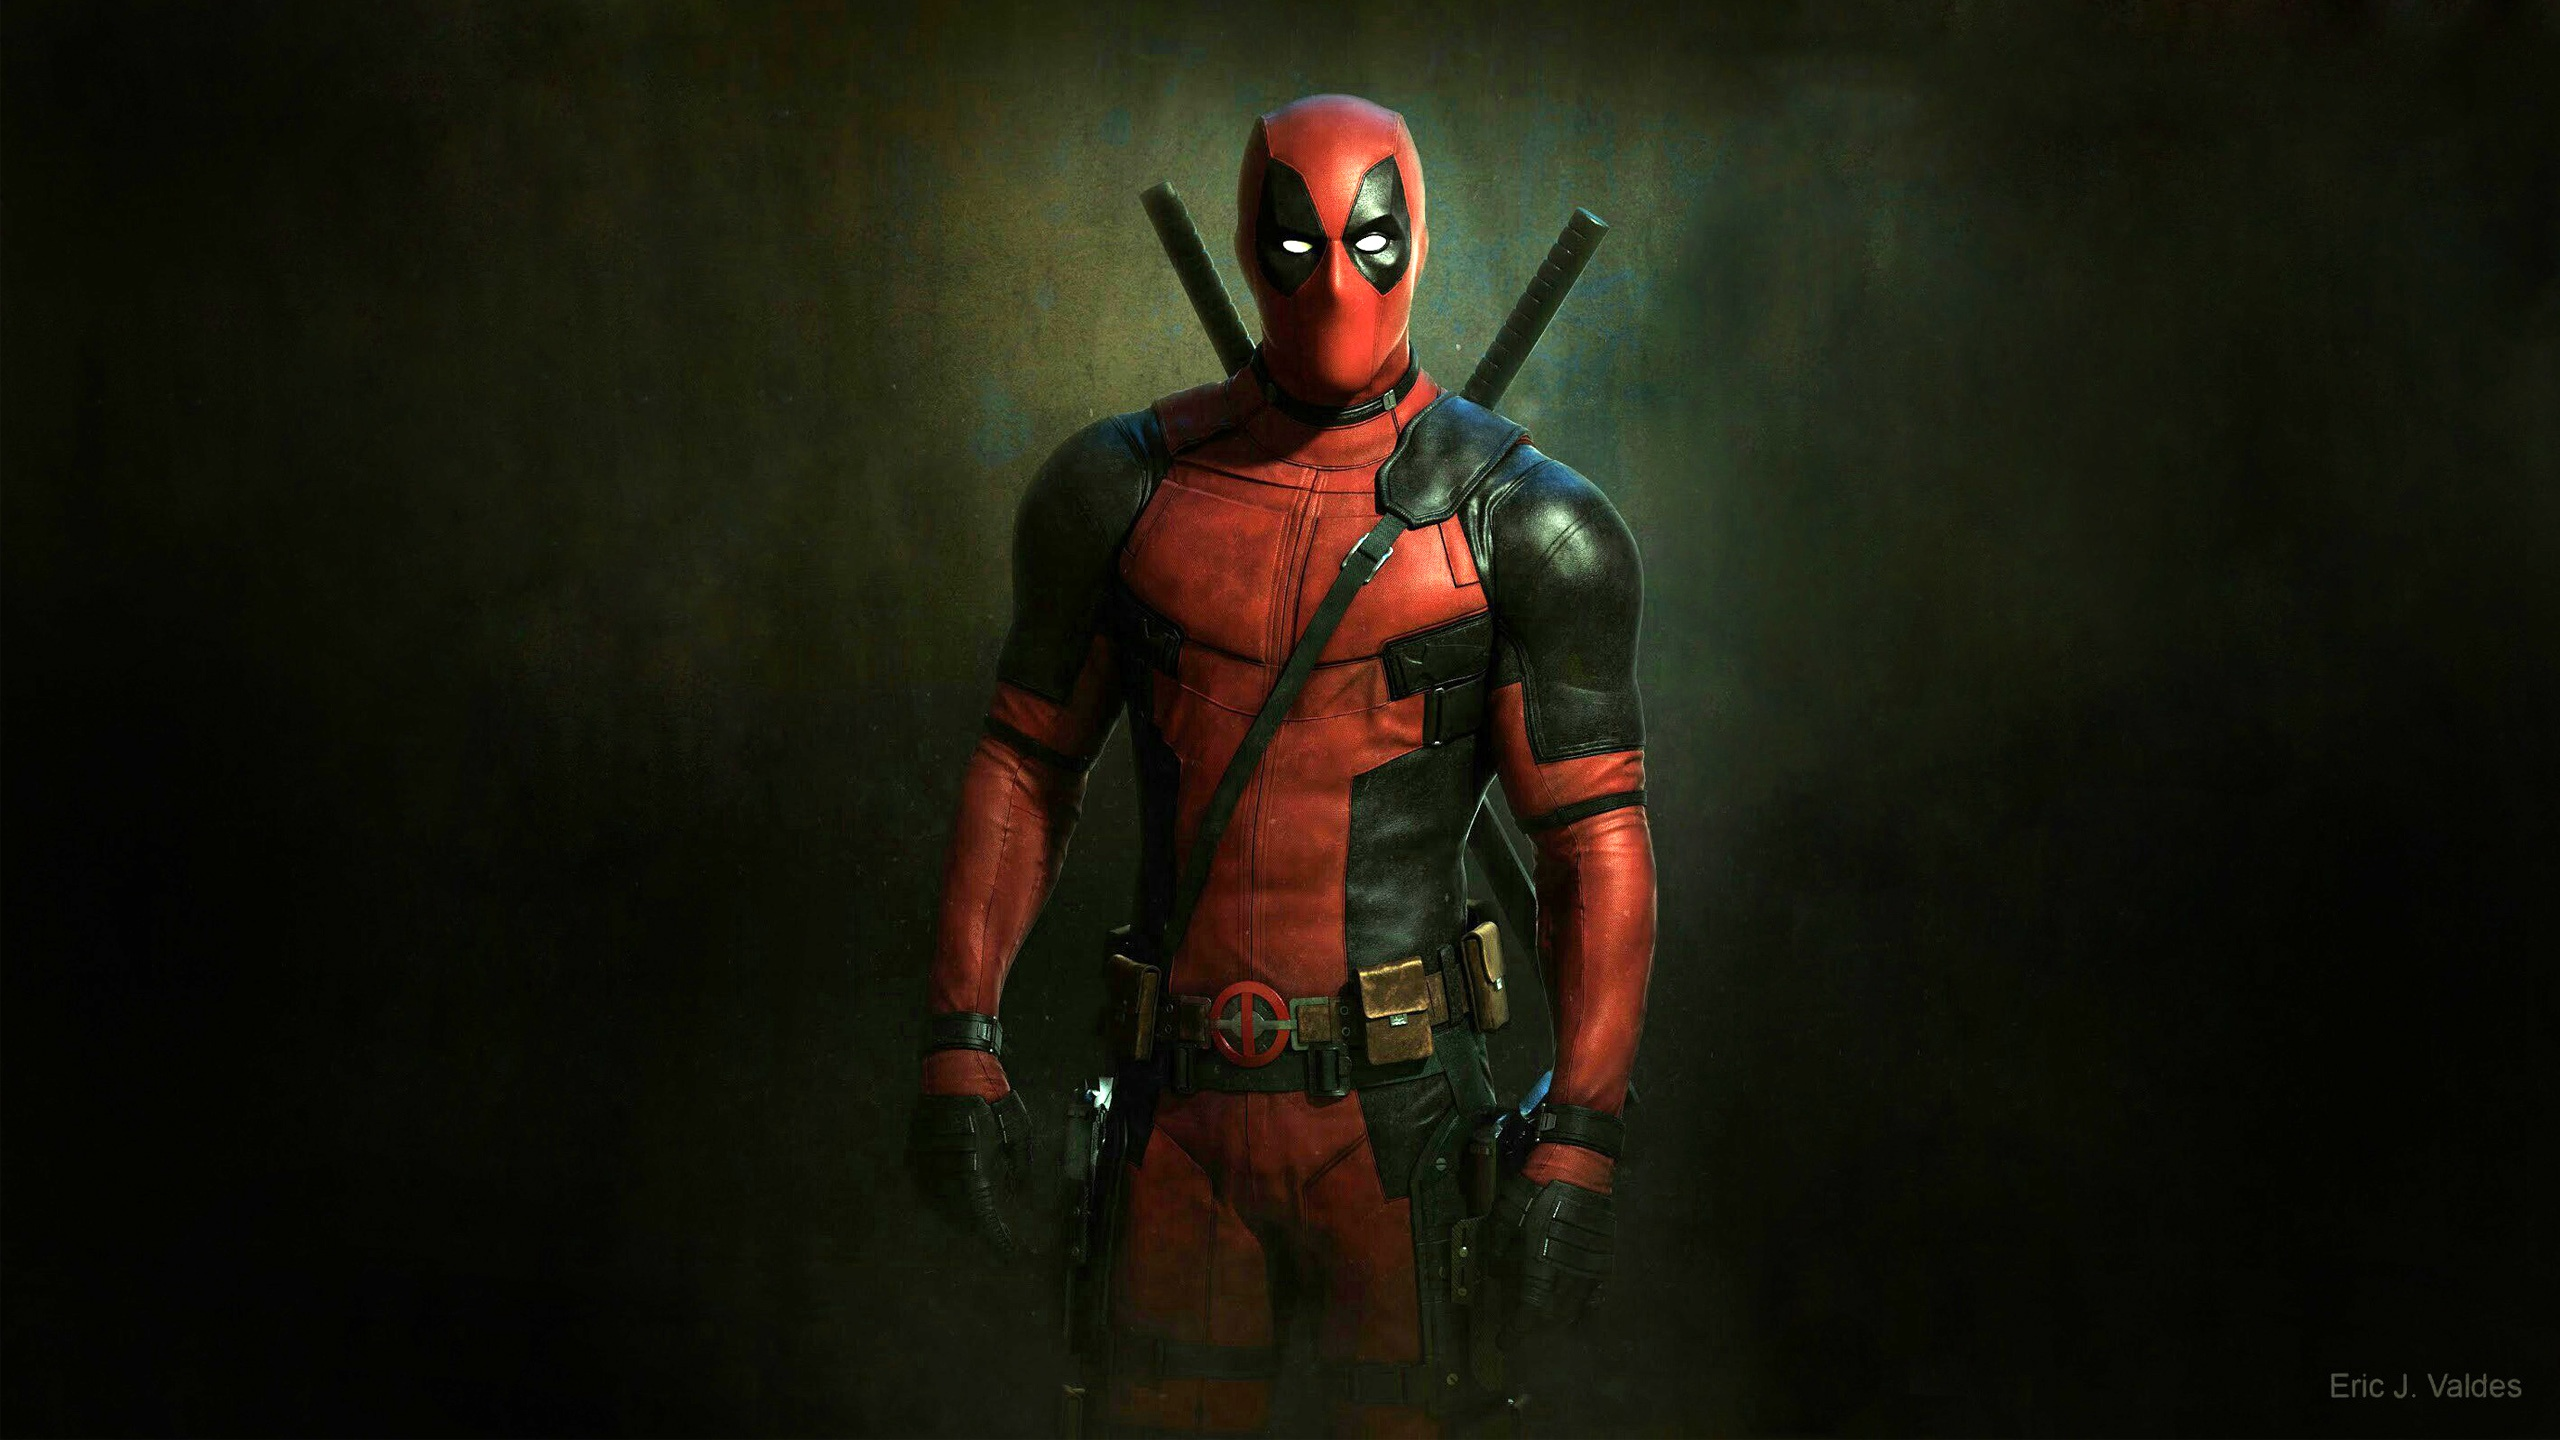 Deadpool wallpaper HD download